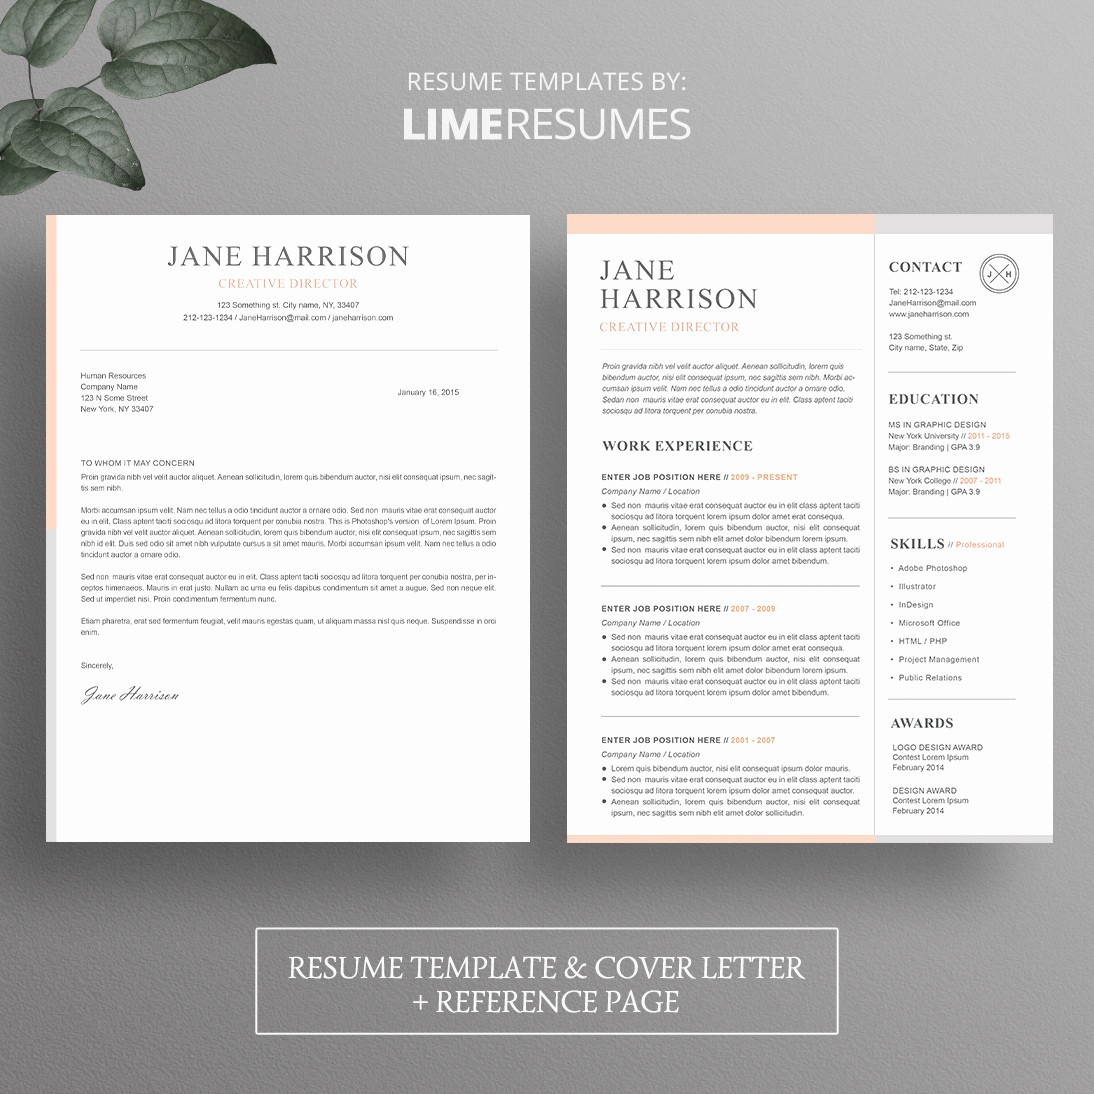 Resume Cover Page Template Word Luxury Resume Template Cover Letter Template for Word